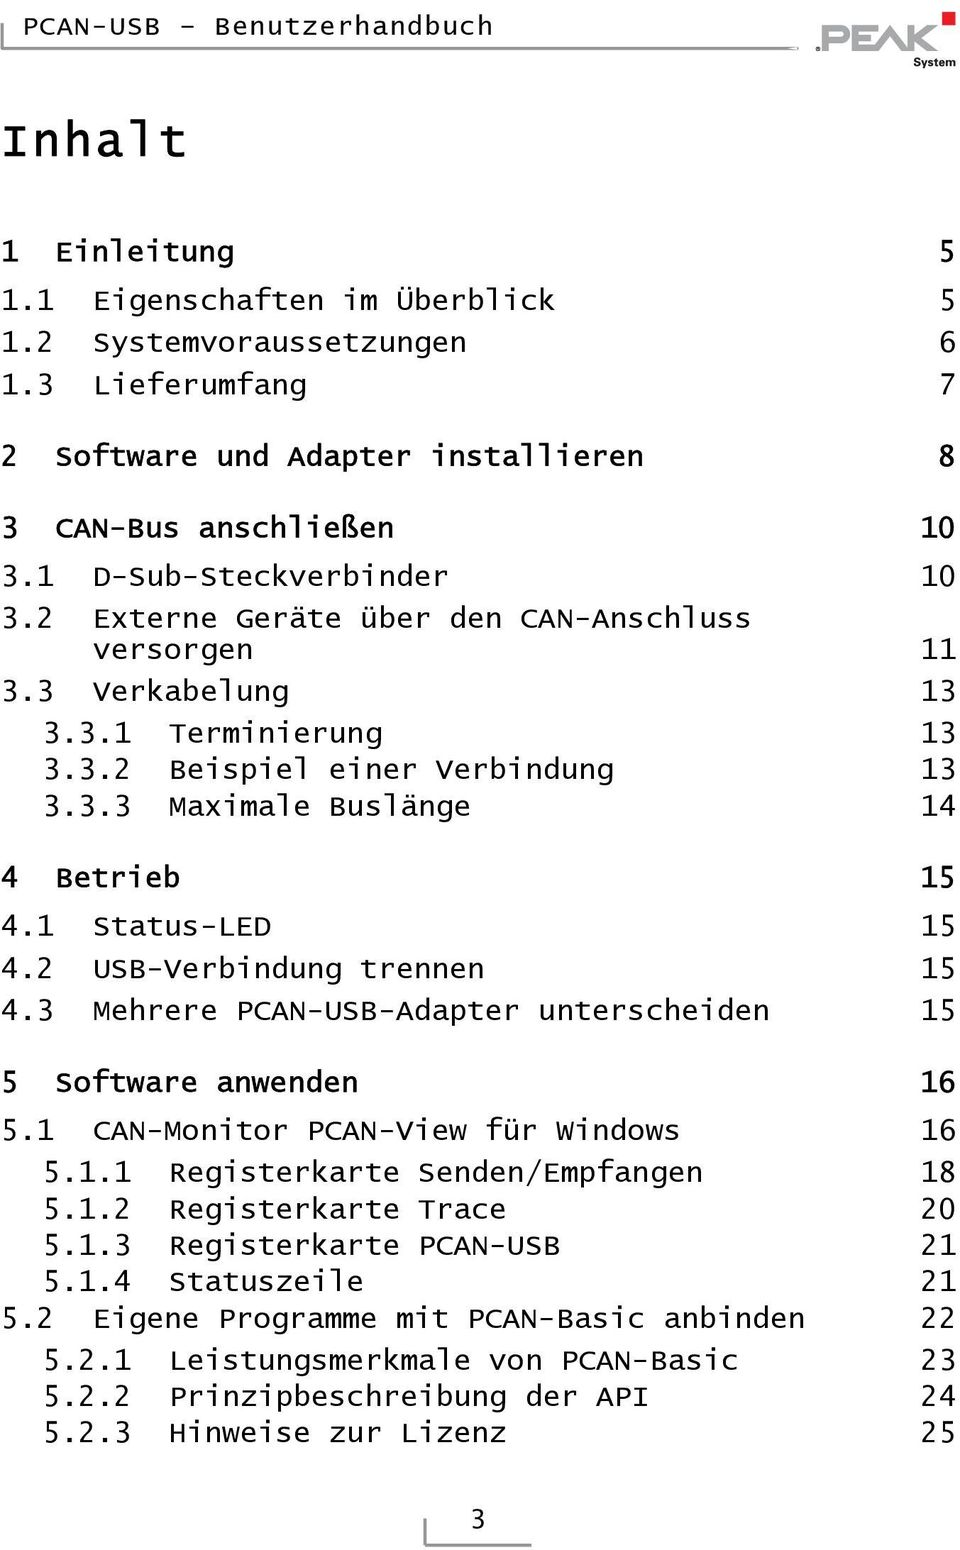 2 USB-Verbindung trennen 15 4.3 Mehrere PCAN-USB-Adapter unterscheiden 15 5 Software anwenden 16 5.1 CAN-Monitor PCAN-View für Windows 16 5.1.1 Registerkarte Senden/Empfangen 18 5.1.2 Registerkarte Trace 20 5.